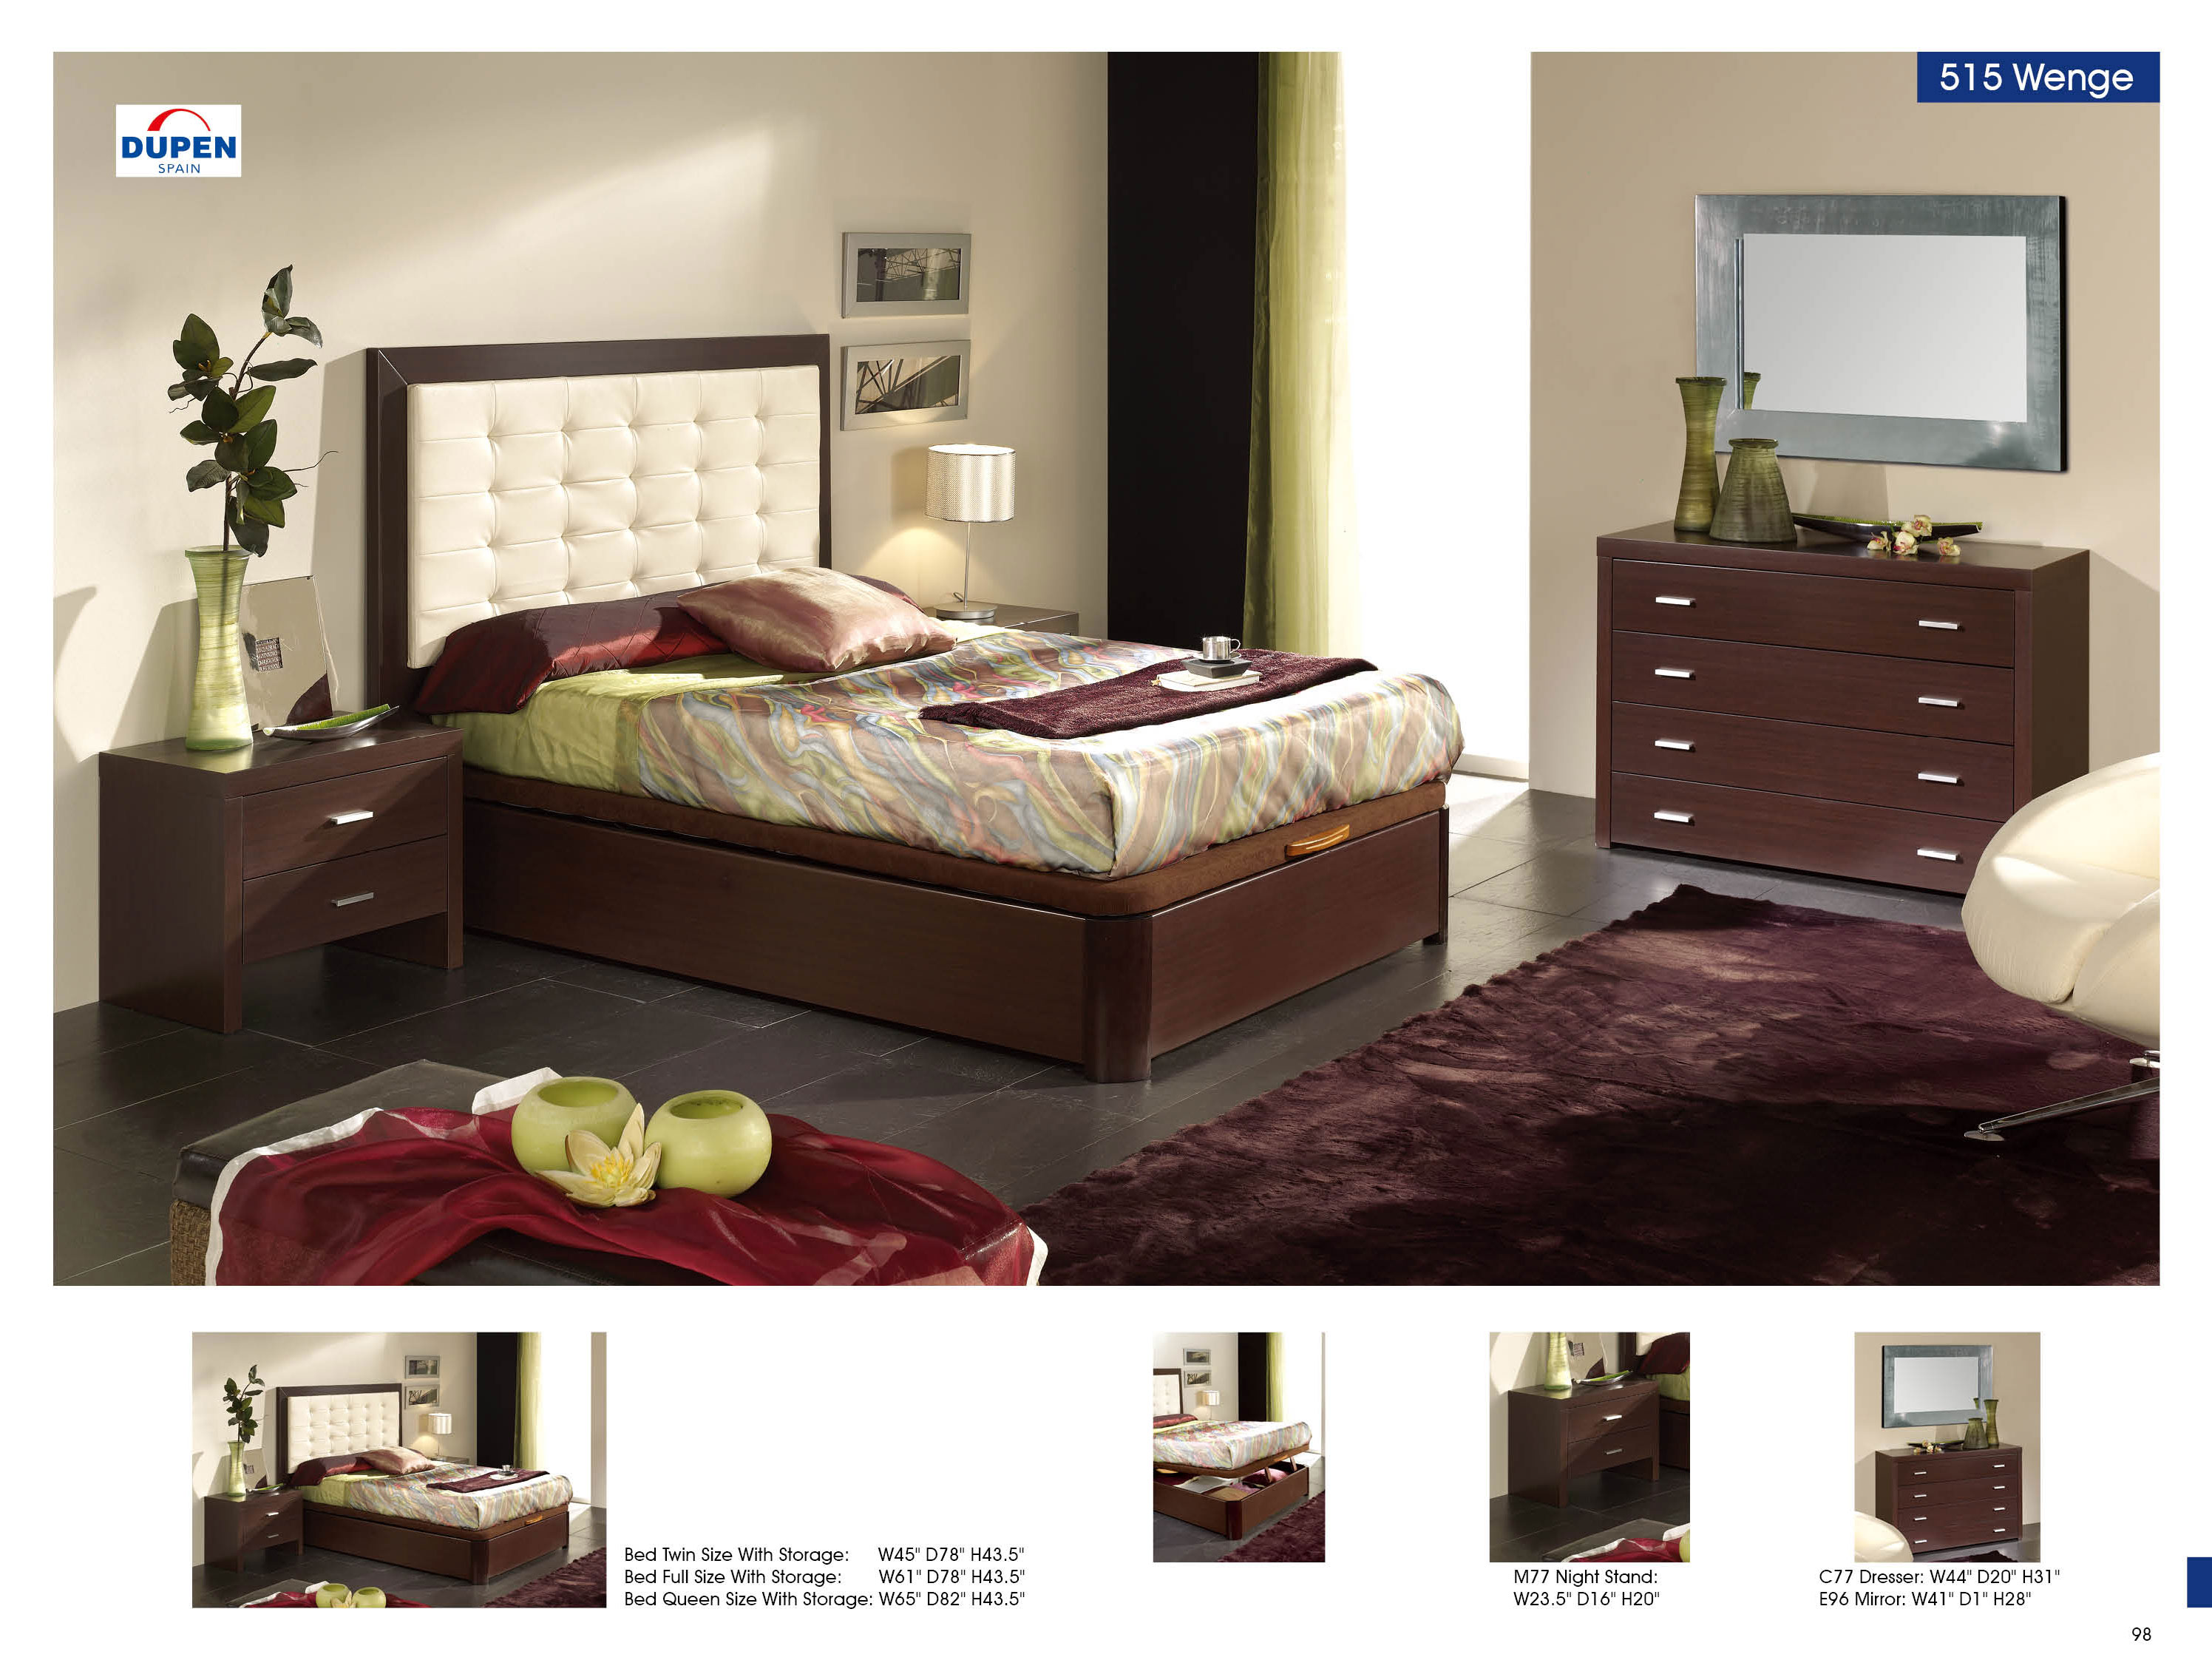 alicante 515 wenge m77 c77 e96 twin size beds bedroom furniture